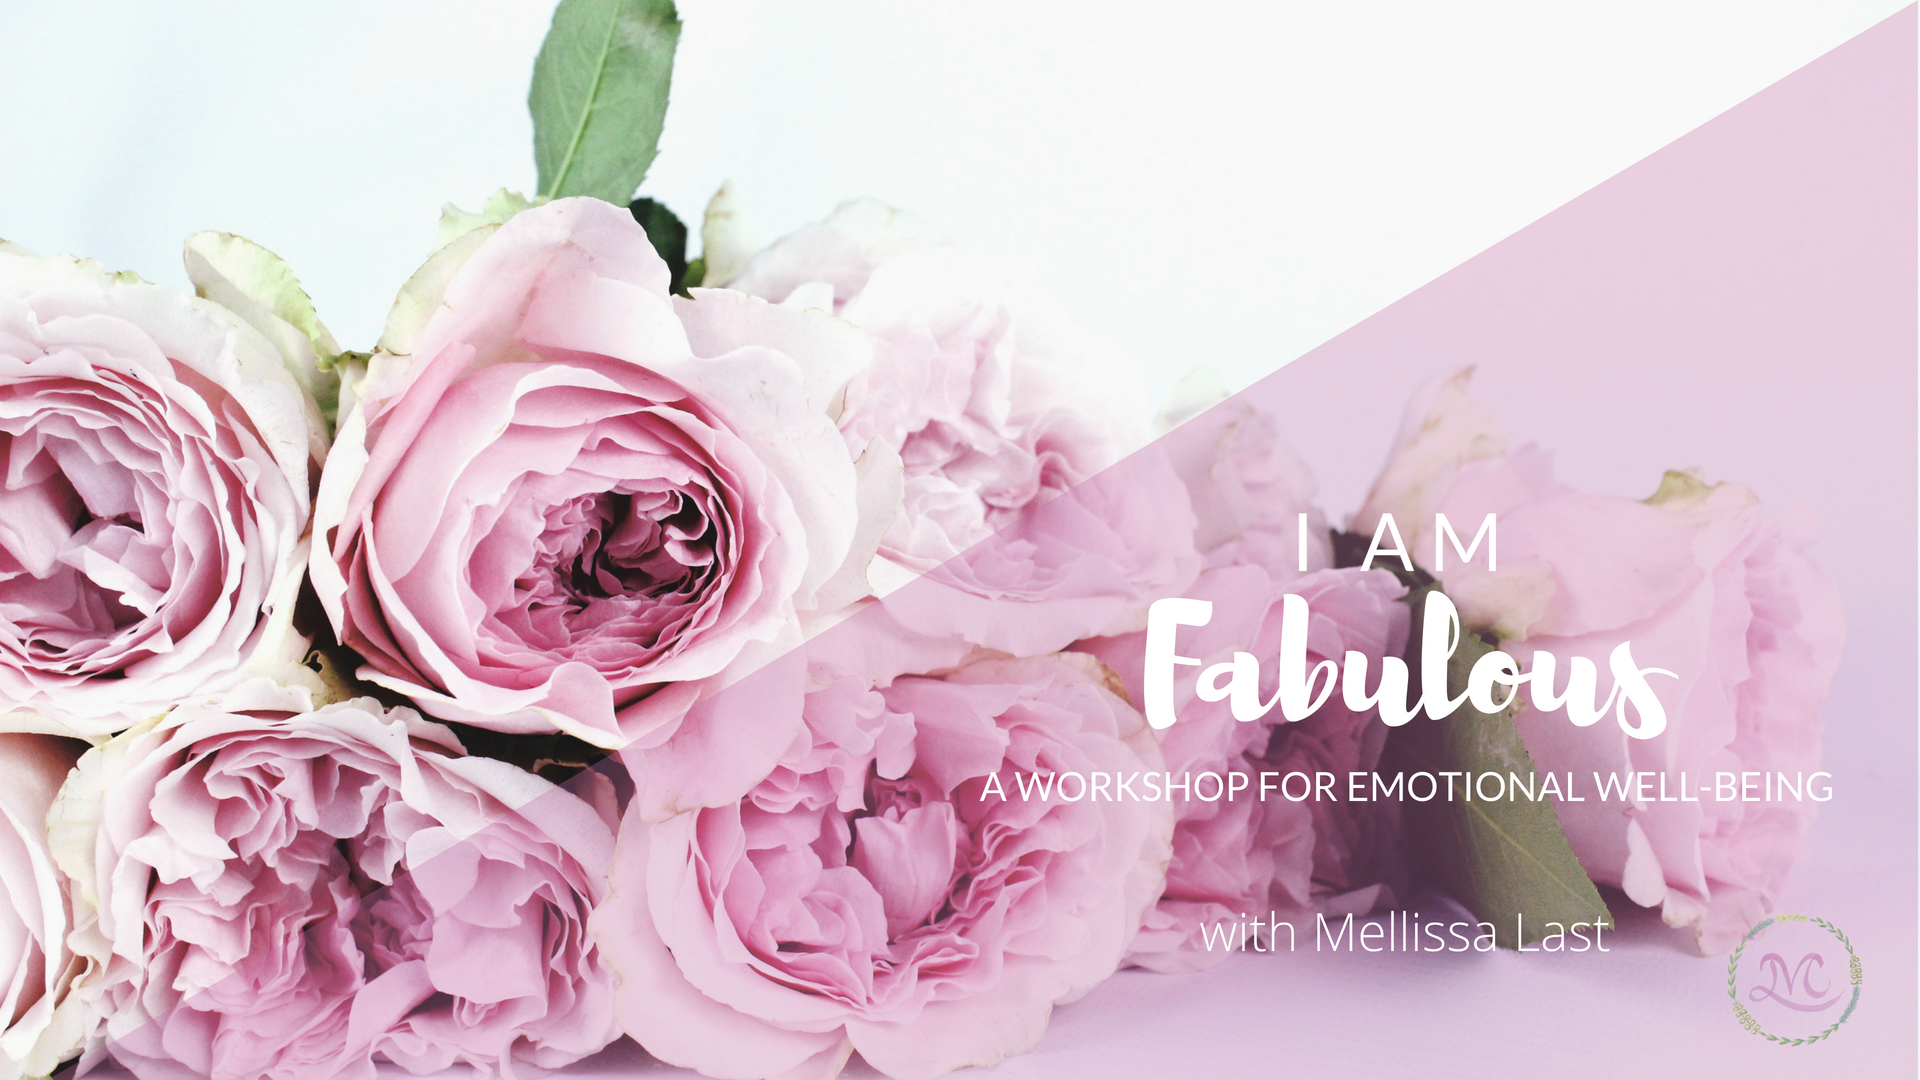 I am Fabulous workshop event information